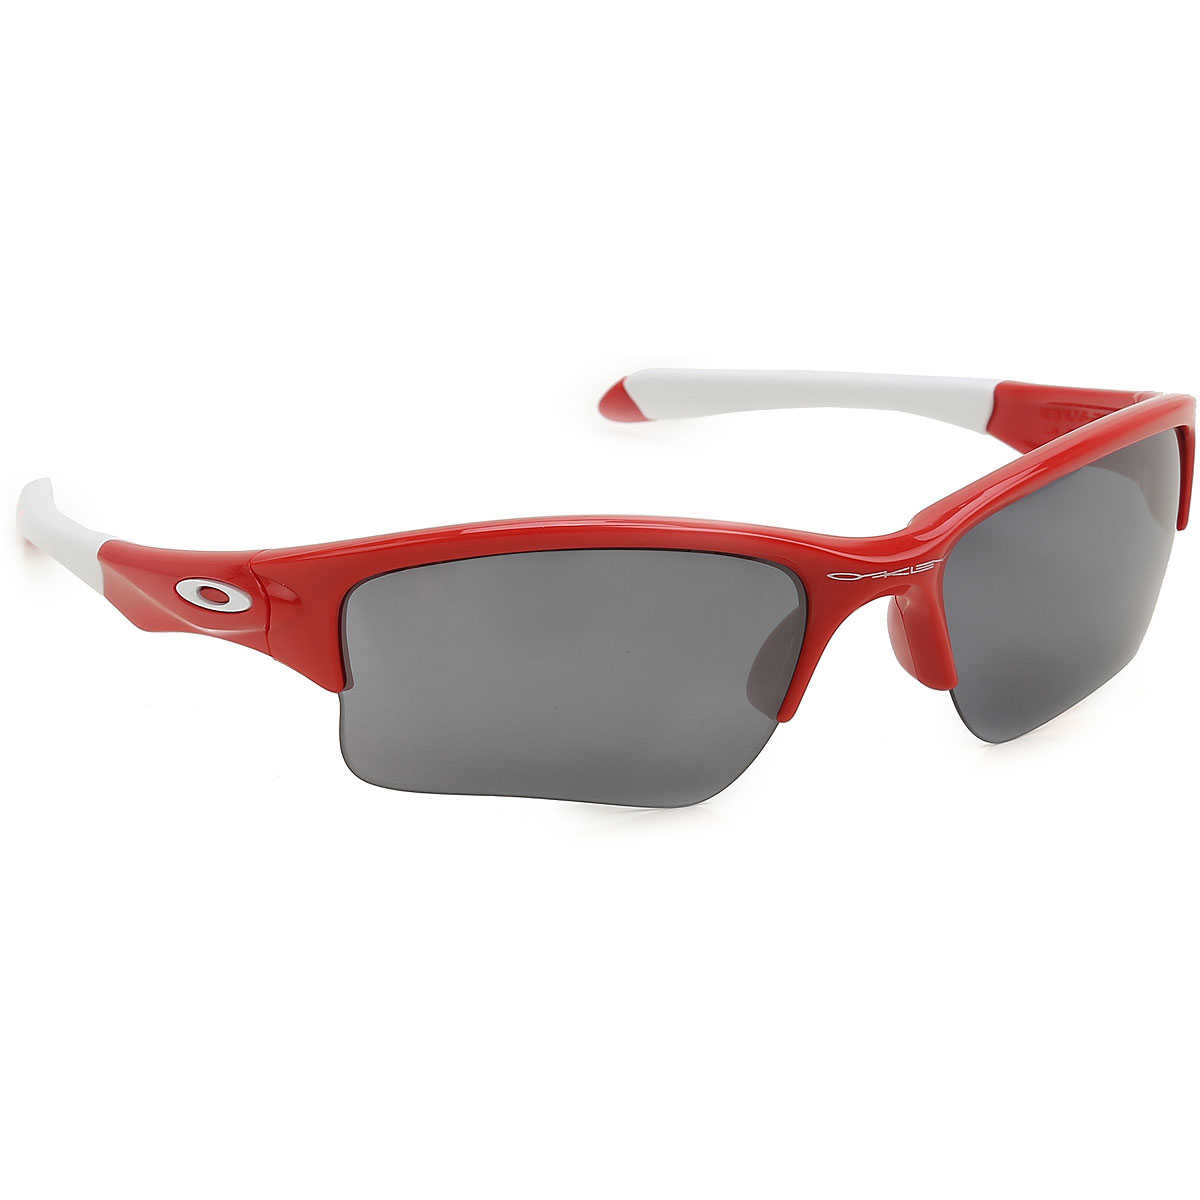 Oakley Kids Sunglasses for Boys in Outlet Red USA - GOOFASH